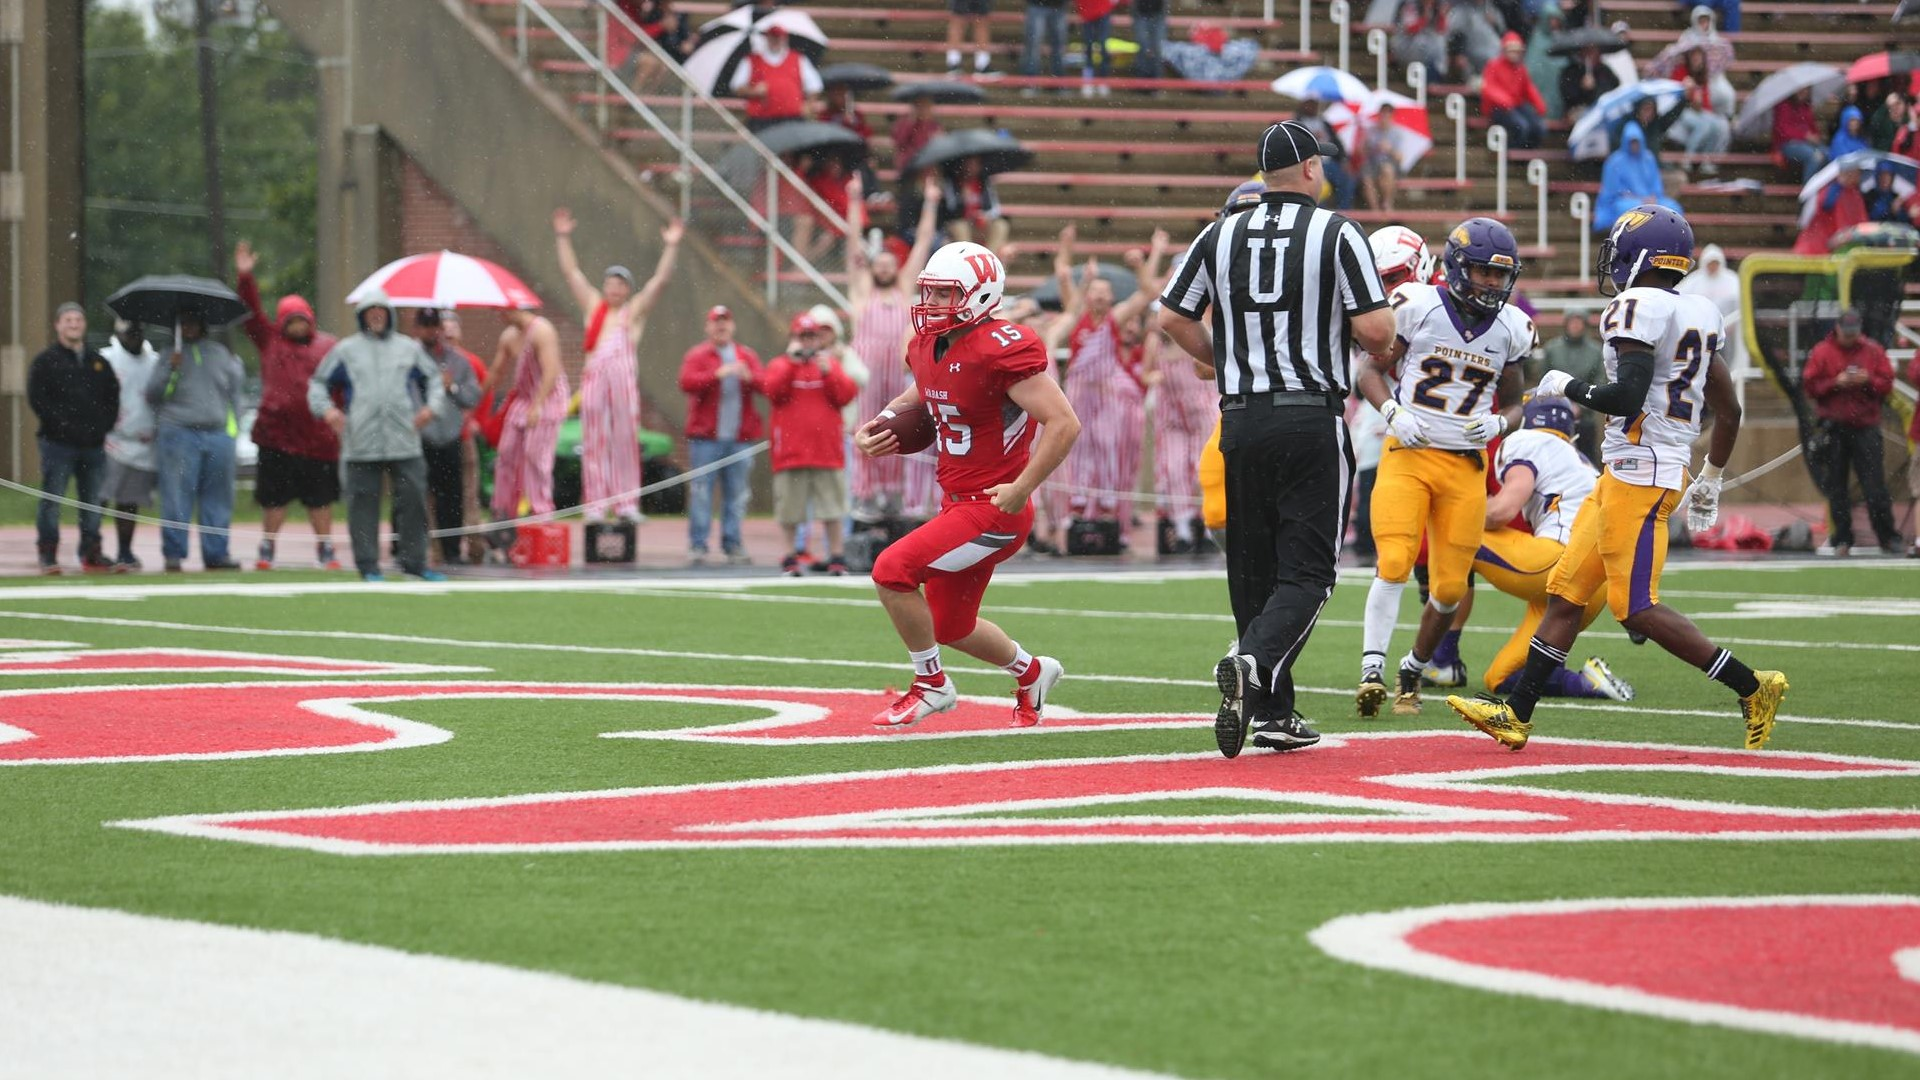 Seniors Lead Little Giants To 16-13 Win Over Wisconsin-Stevens Point - Wabash College Athletics